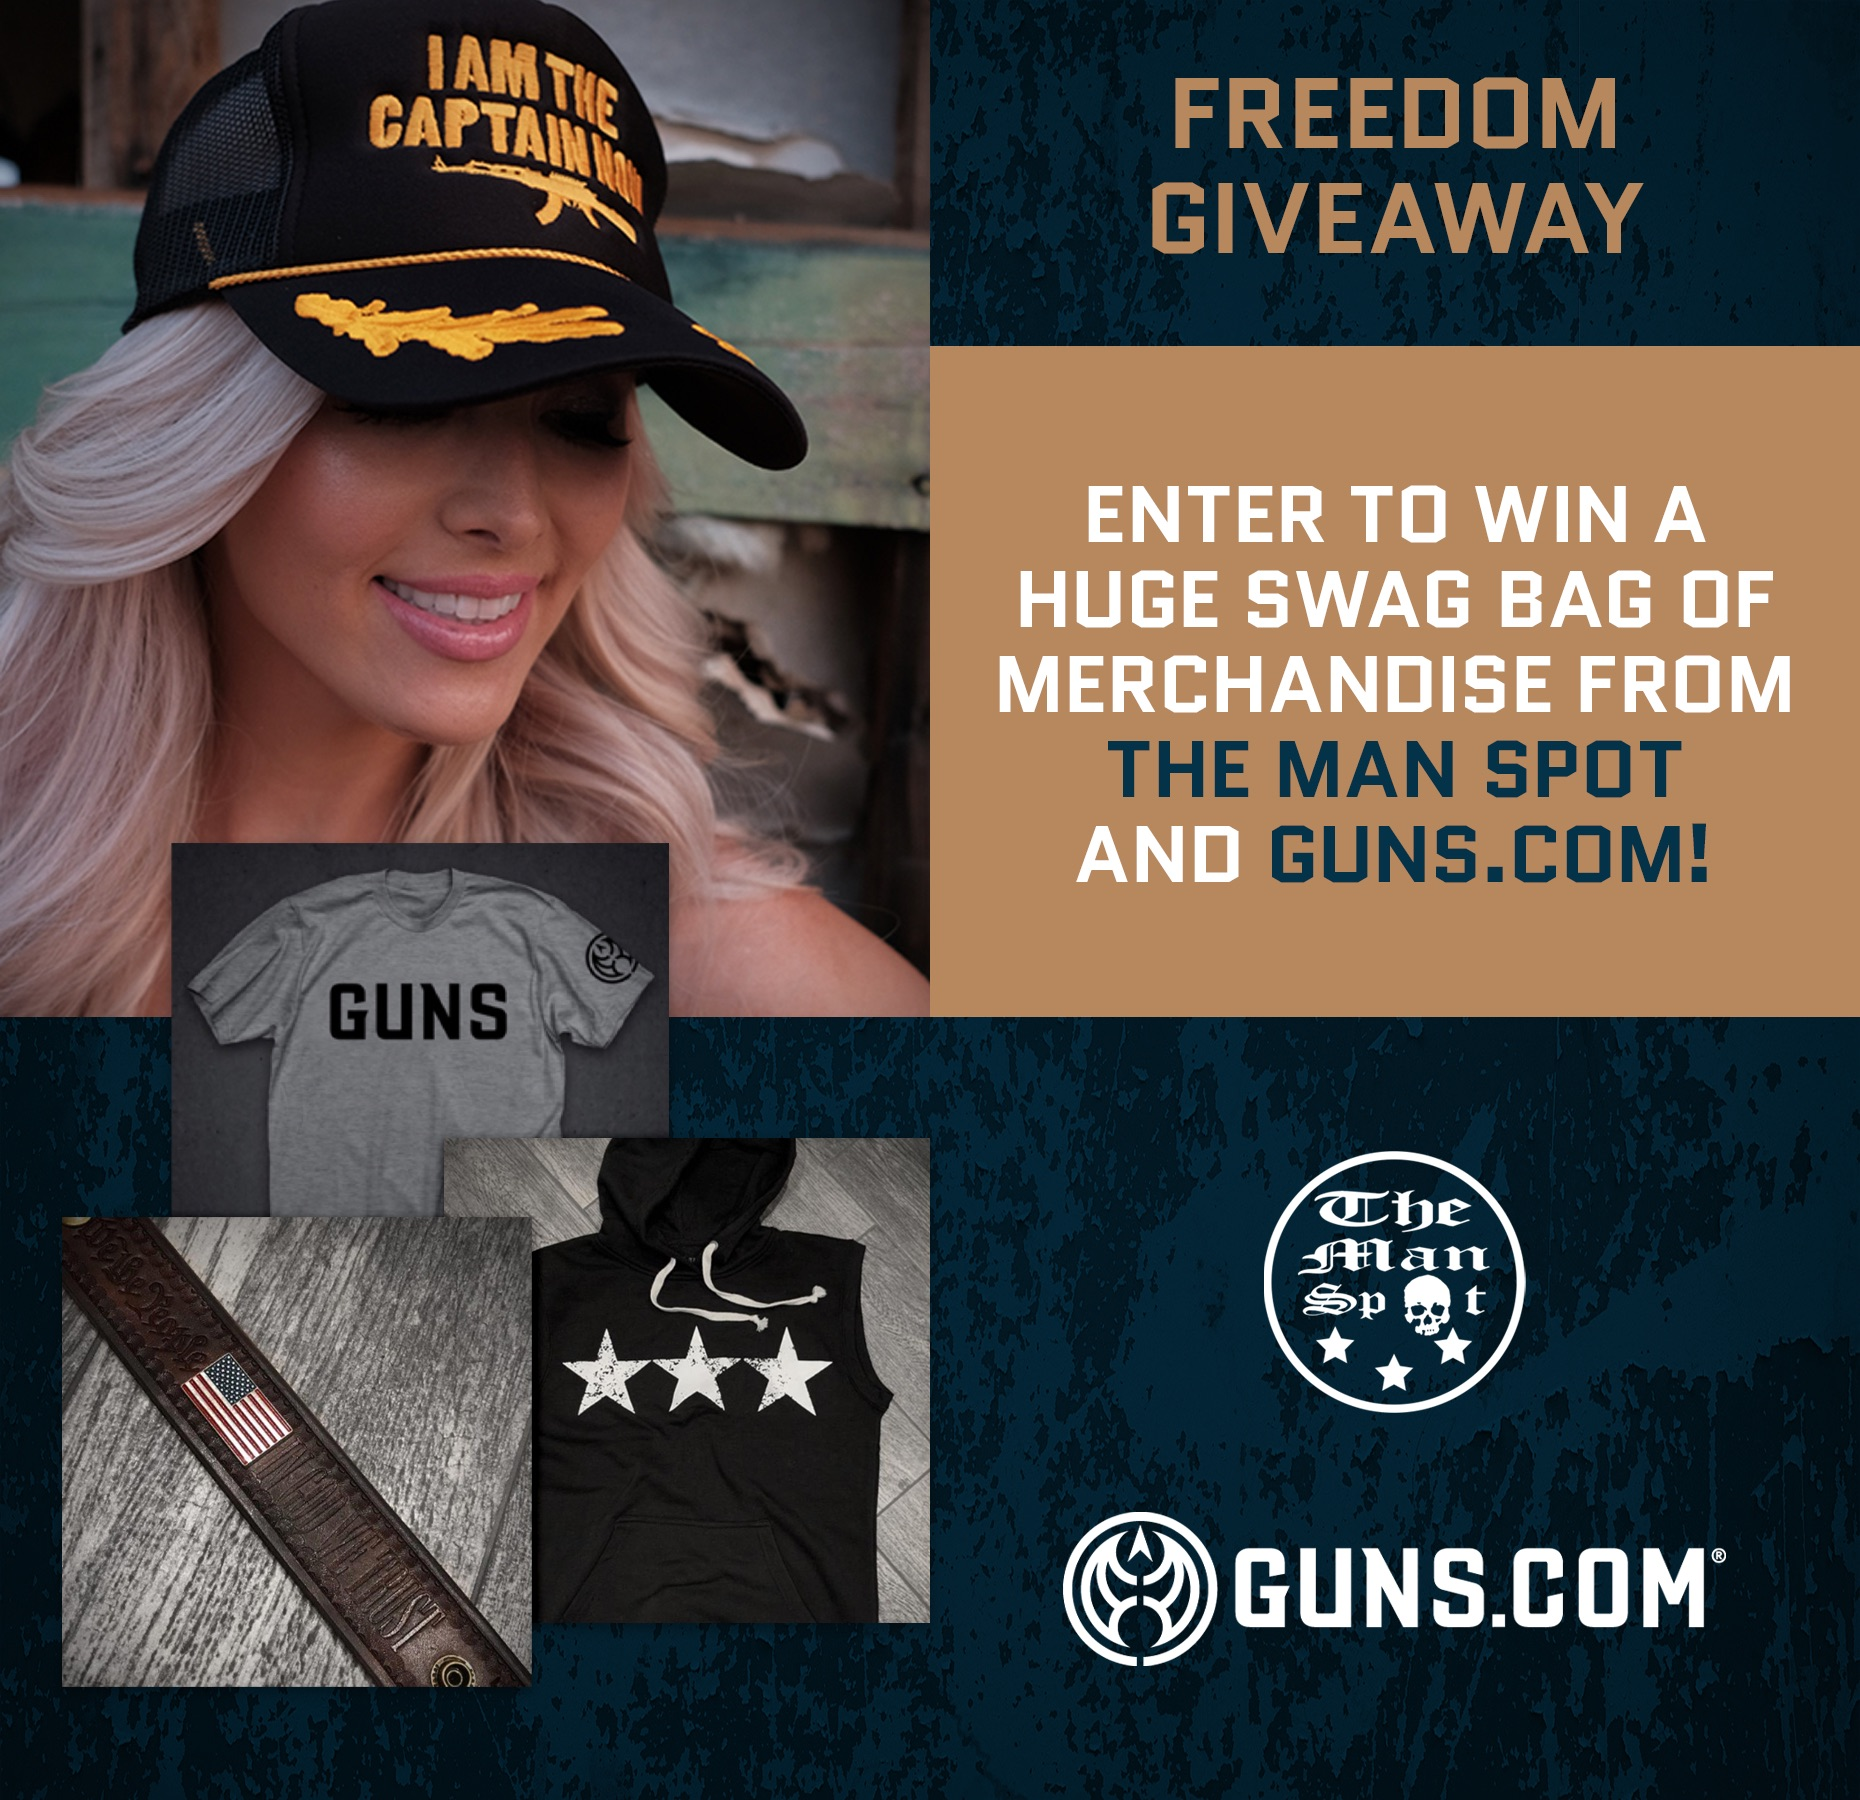 Enter to win The Man Spot and Guns.com Merchandise/Swag Bag including T-Shirts, Pelican Traveler, Trucker Hat, Hoodie Zip Up, USA Leather Freedom Cuff, Black Multicam Cap, and Captain Hat. Giveaway Image